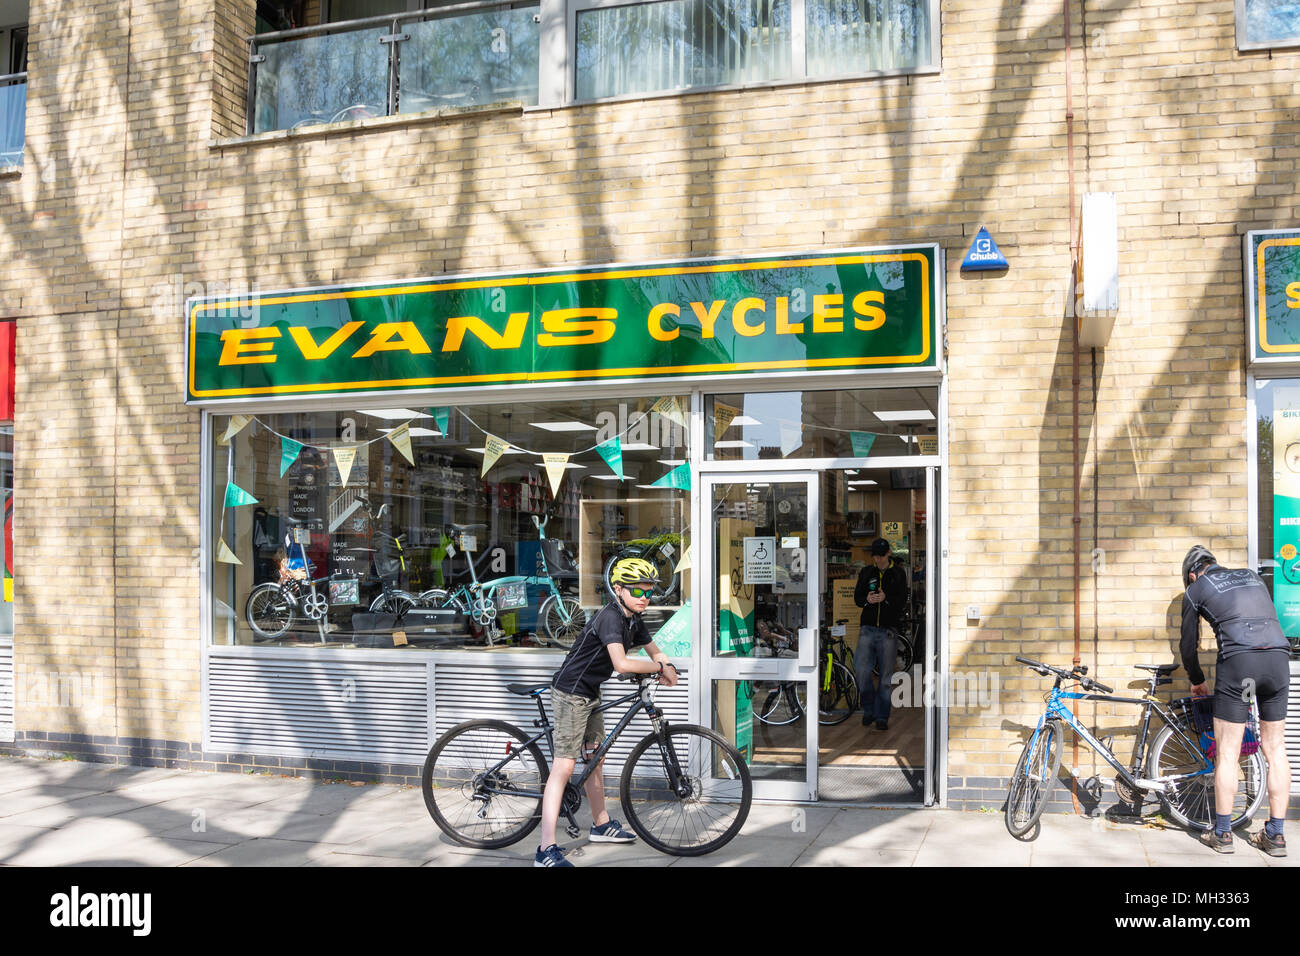 Evans cycles shop, Chiswick High Street, Chiswick, London Borough of Hounslow, Greater London, England, United Kingdom - Stock Image